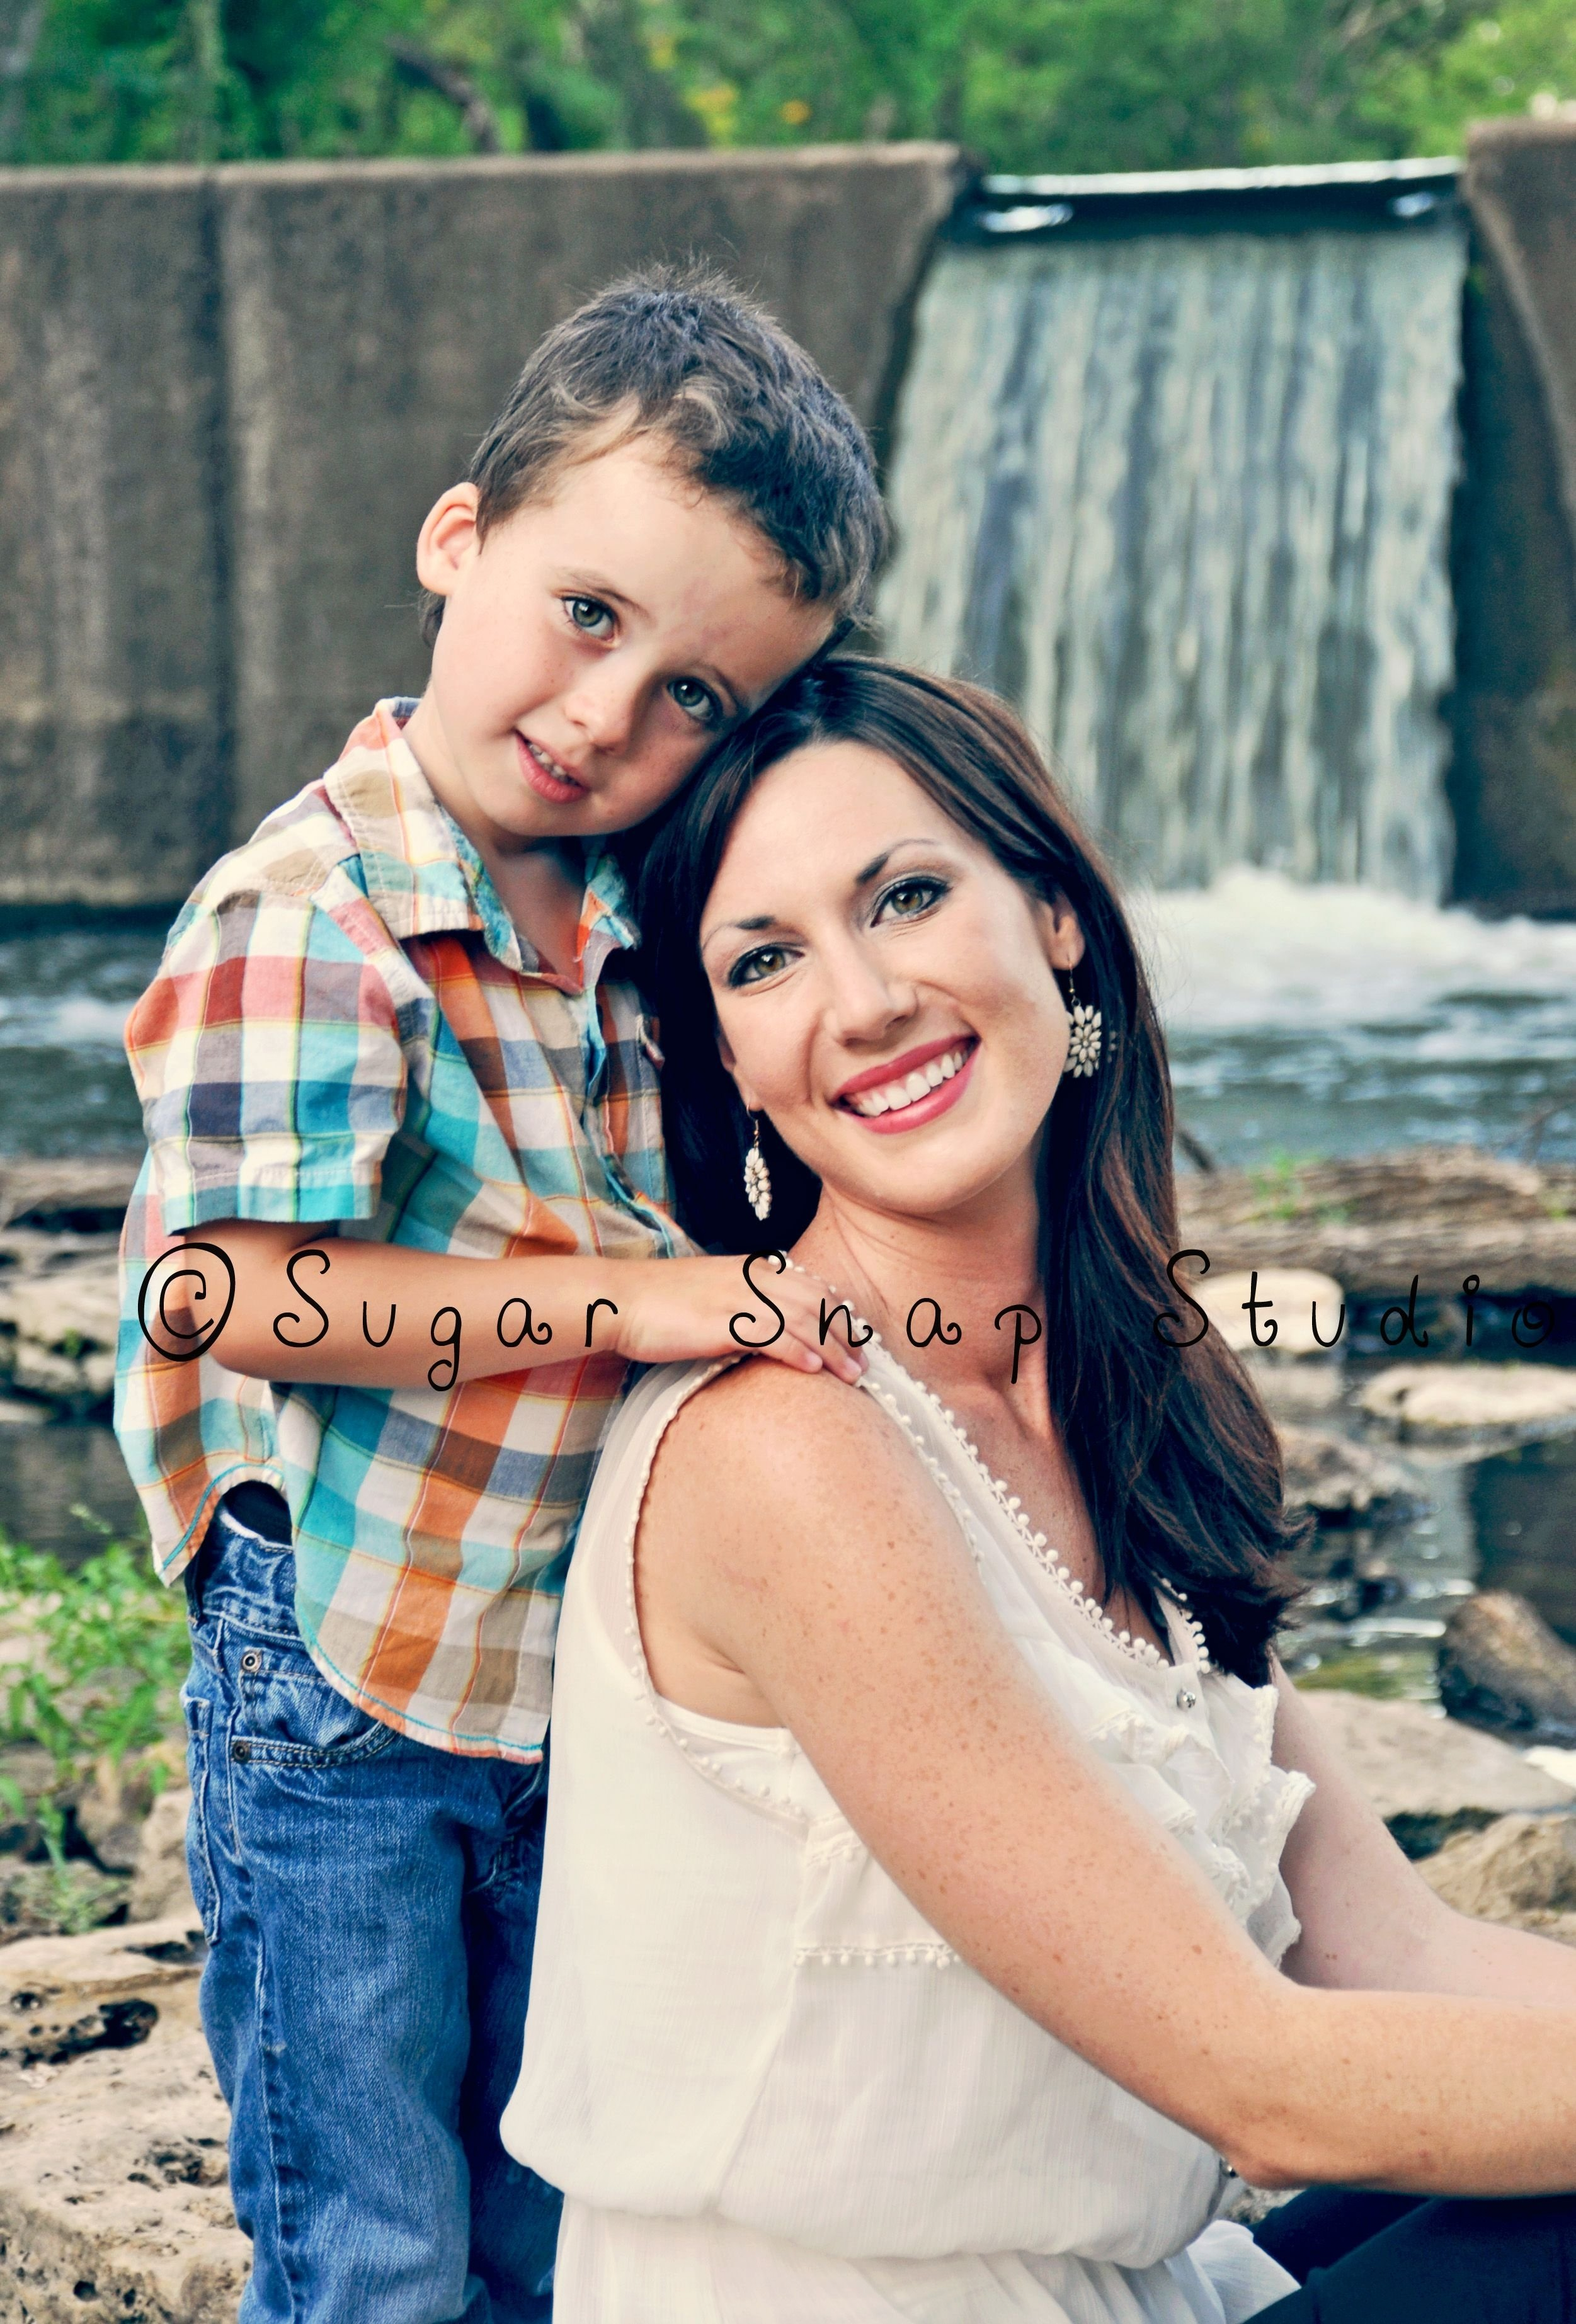 10 Wonderful Mother And Son Photo Ideas mom son photography 3 pinteres 2020